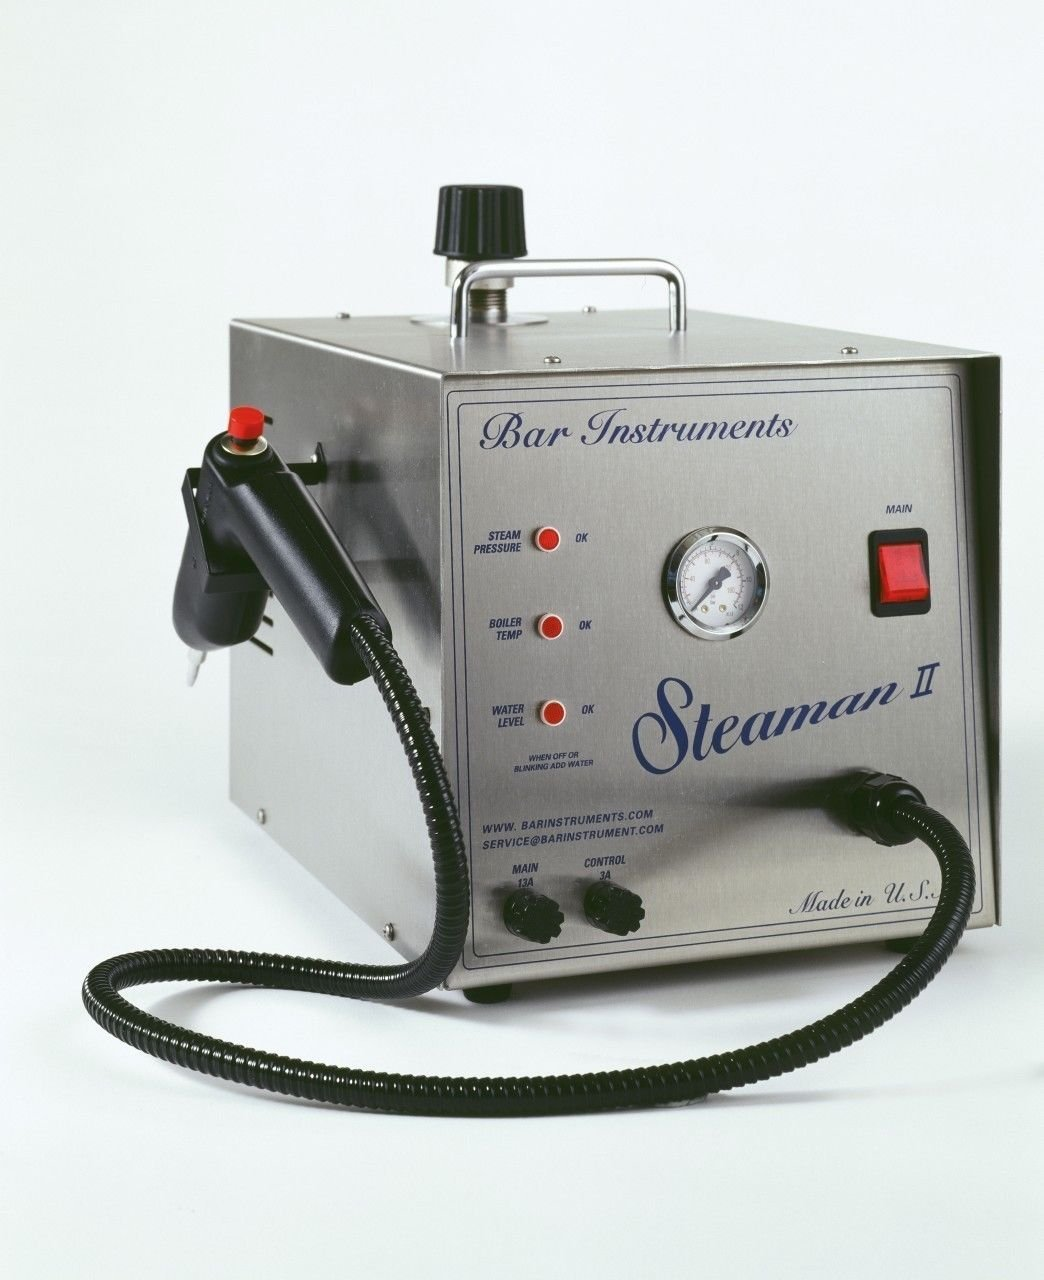 Bar Steaman II Steam Cleaner 1/2 Gallon, Dental Jewelry Made In USA NEW